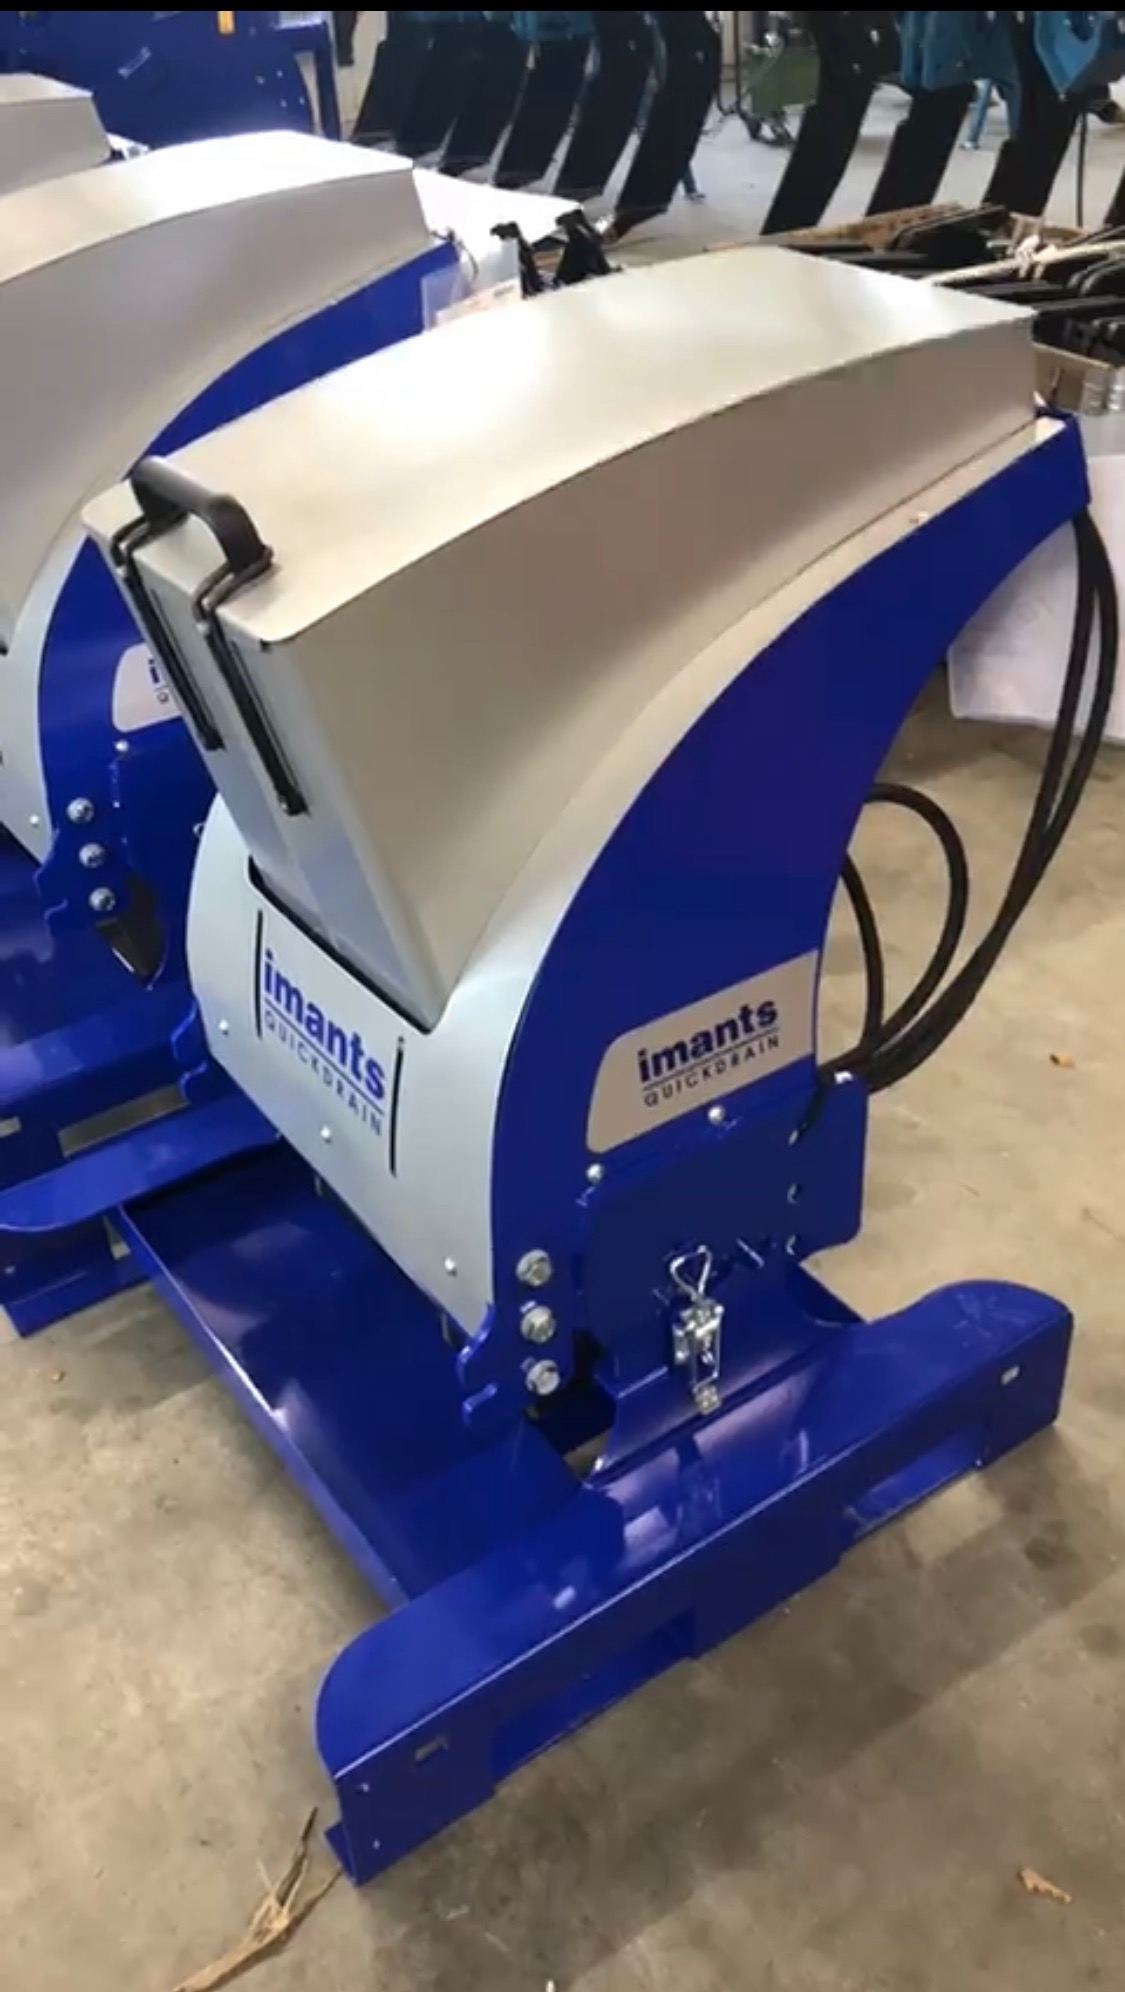 AQUA-AID Solutions Imants QuickDrain stored